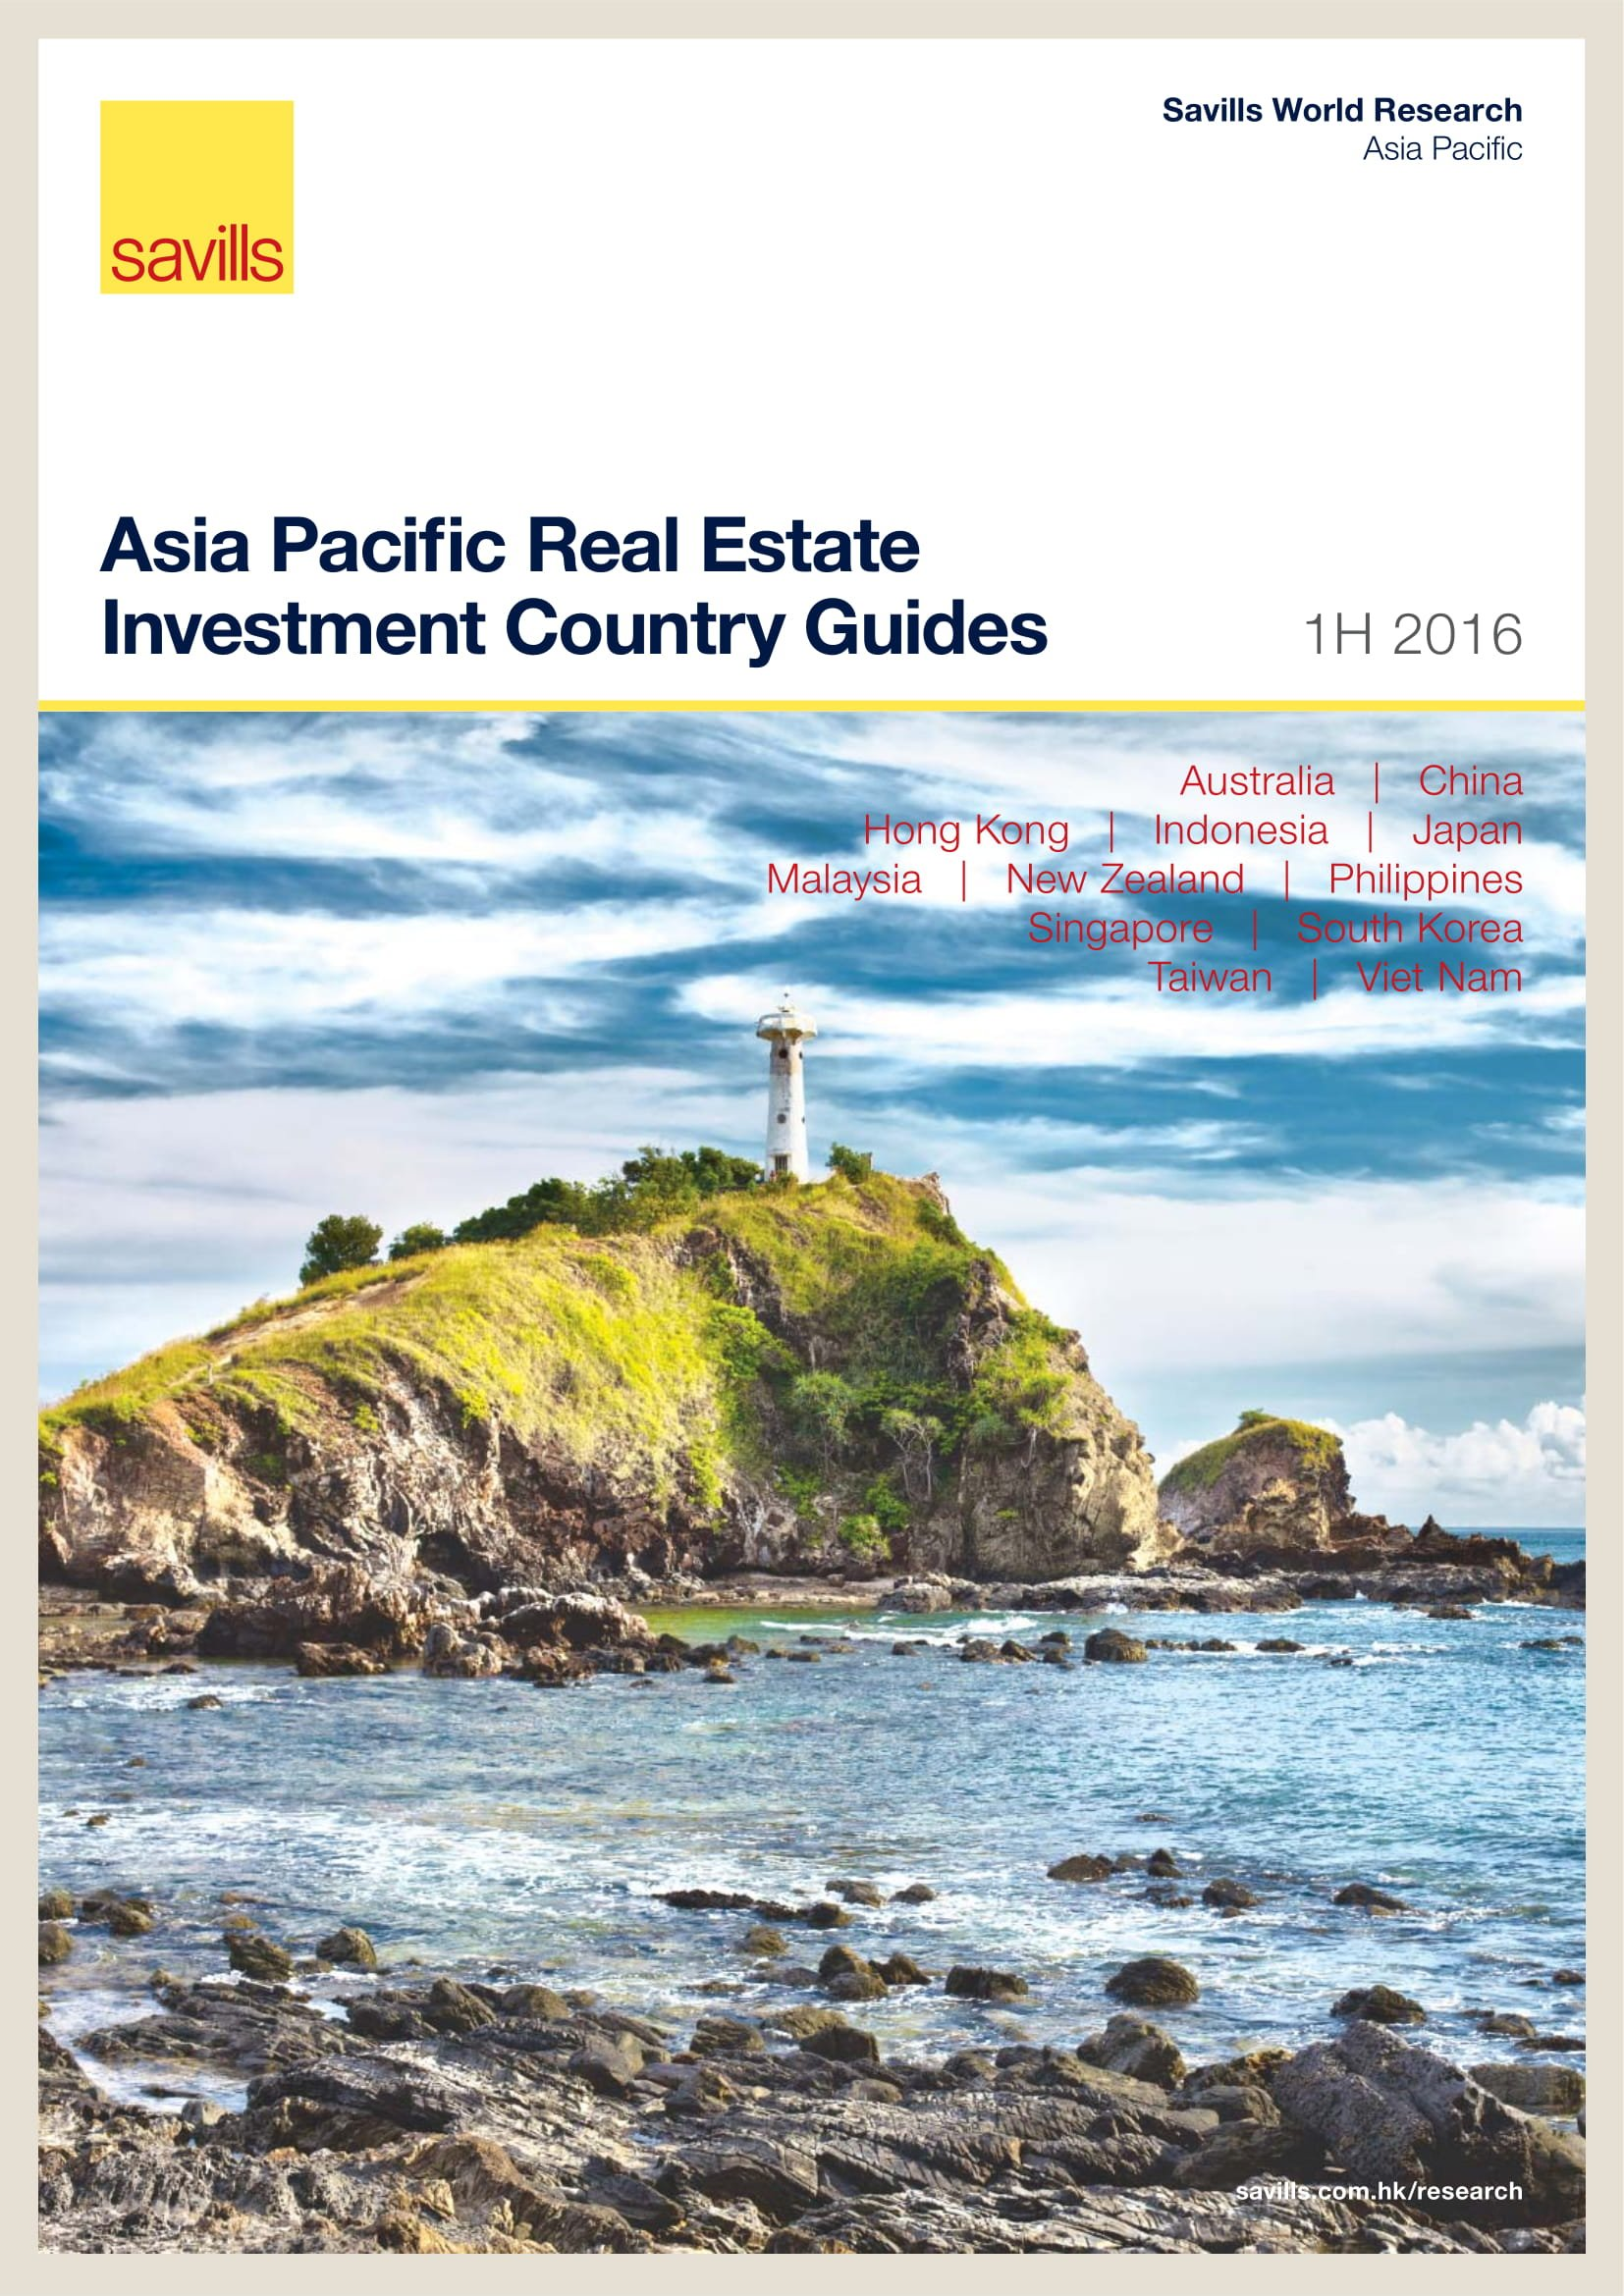 Asia Pacific Real Estate Investment Country Guides 1H 2016